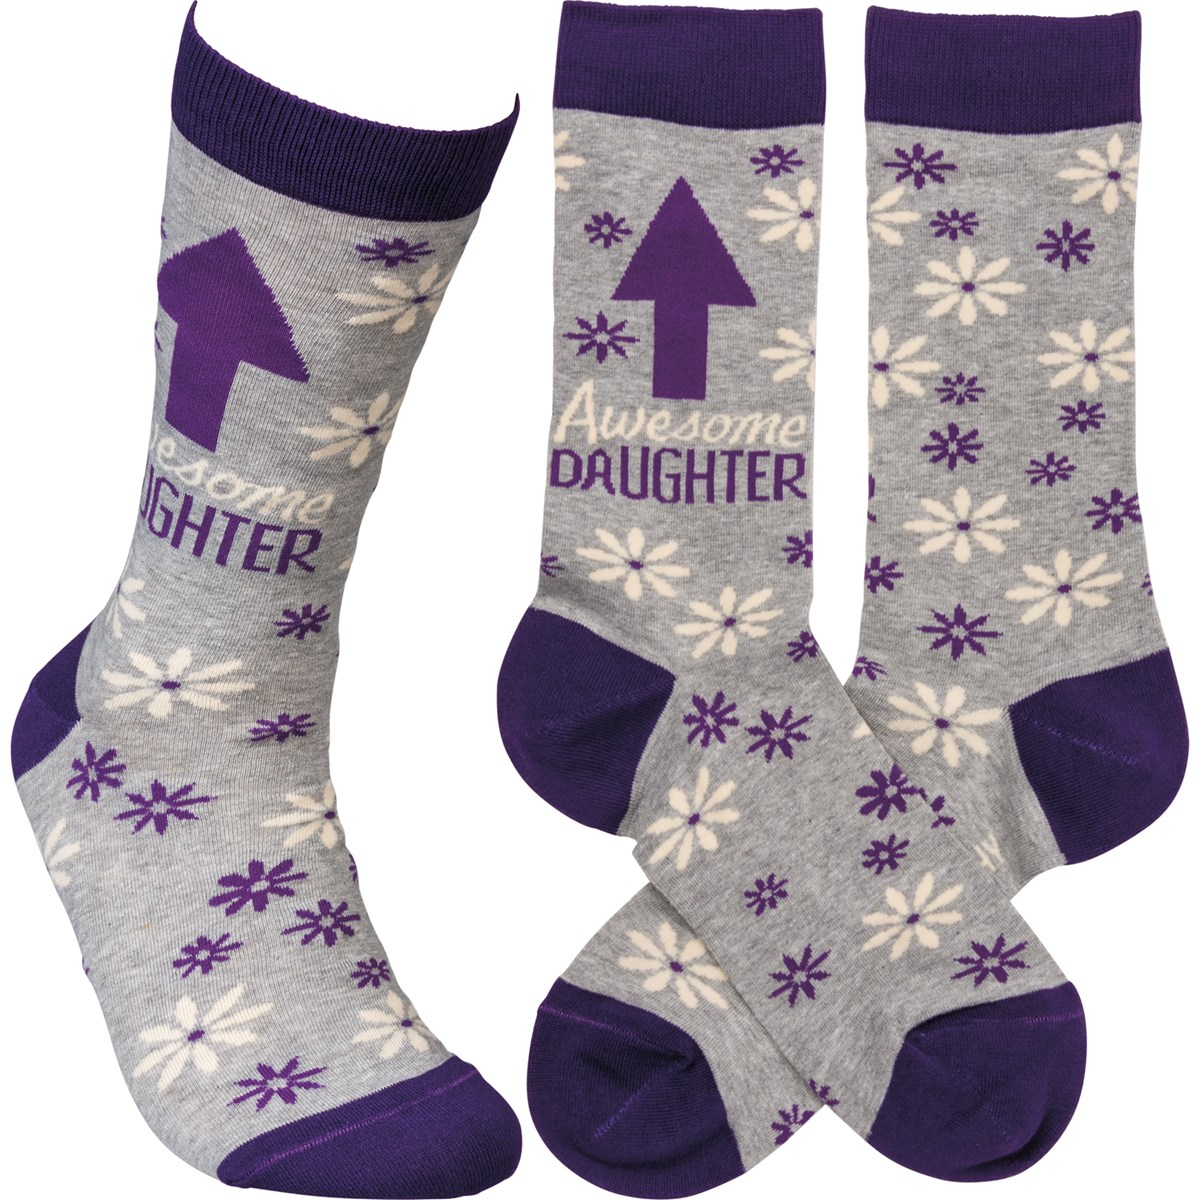 Socks - Awesome Daughter - One Size Fits Most - Cotton, Nylon, Spandex